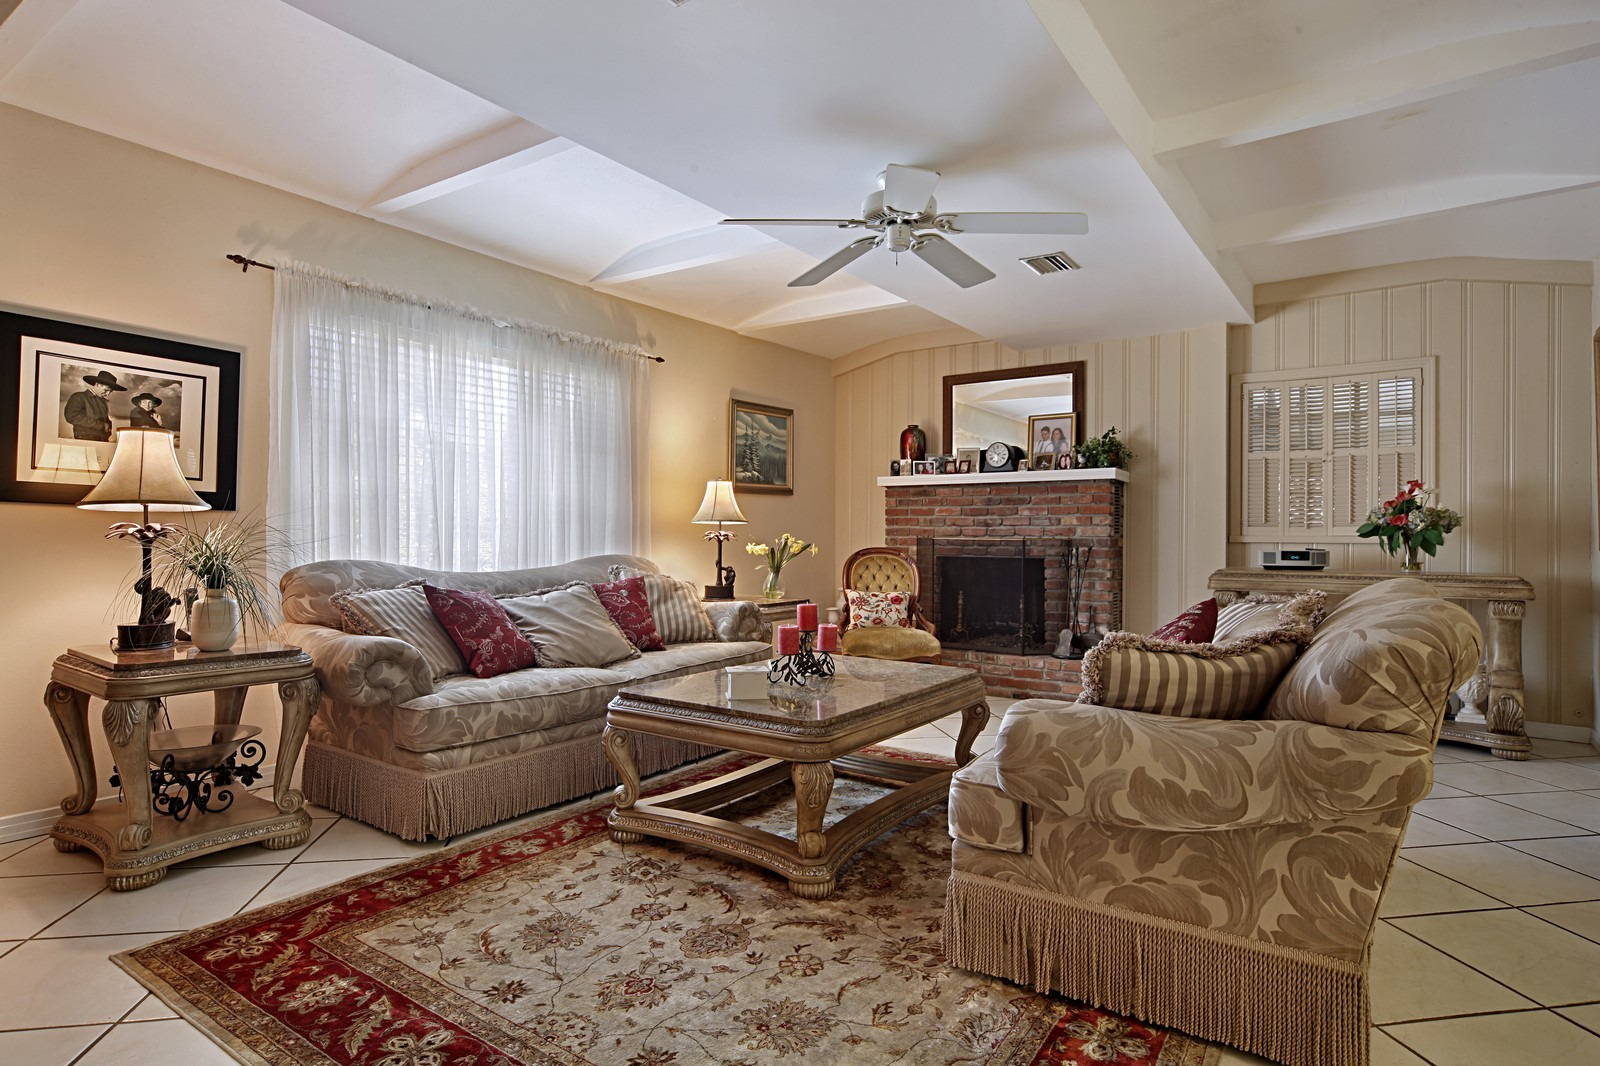 Real Estate Photography - 2621 N Dundee St, Tampa, FL, 33629 - Living Room